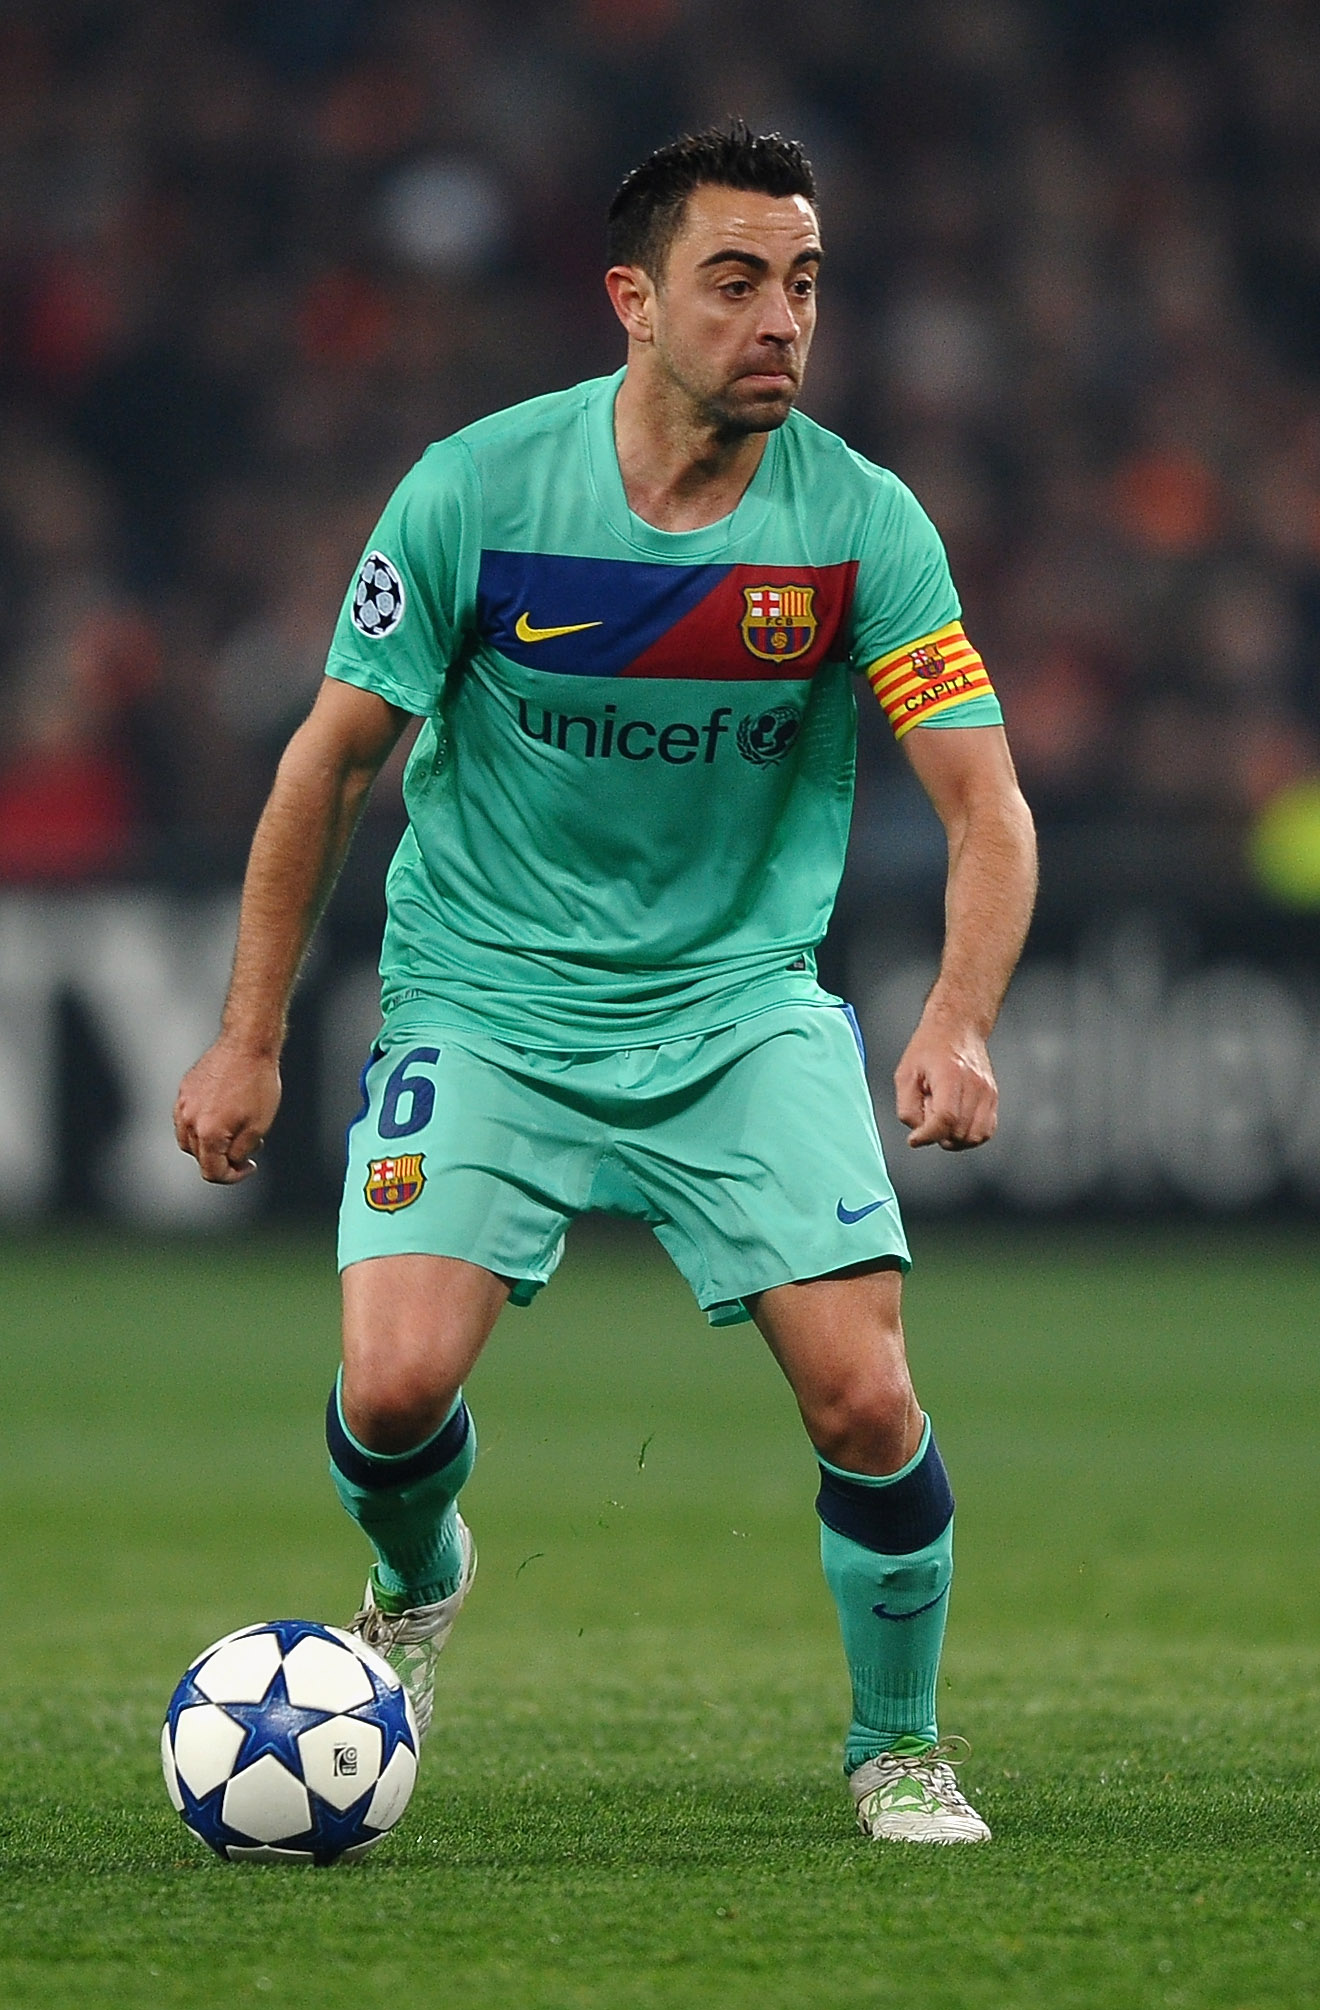 DONETSK, UKRAINE - APRIL 12: Xavi Hernandez of Barcelona in action during the UEFA Champions League Quarter Final 2nd Leg match between Shakhtar Donetsk and Barcelona at the Donbass Arena on April 12, 2011 in Donetsk, Ukraine.  (Photo by Laurence Griffith